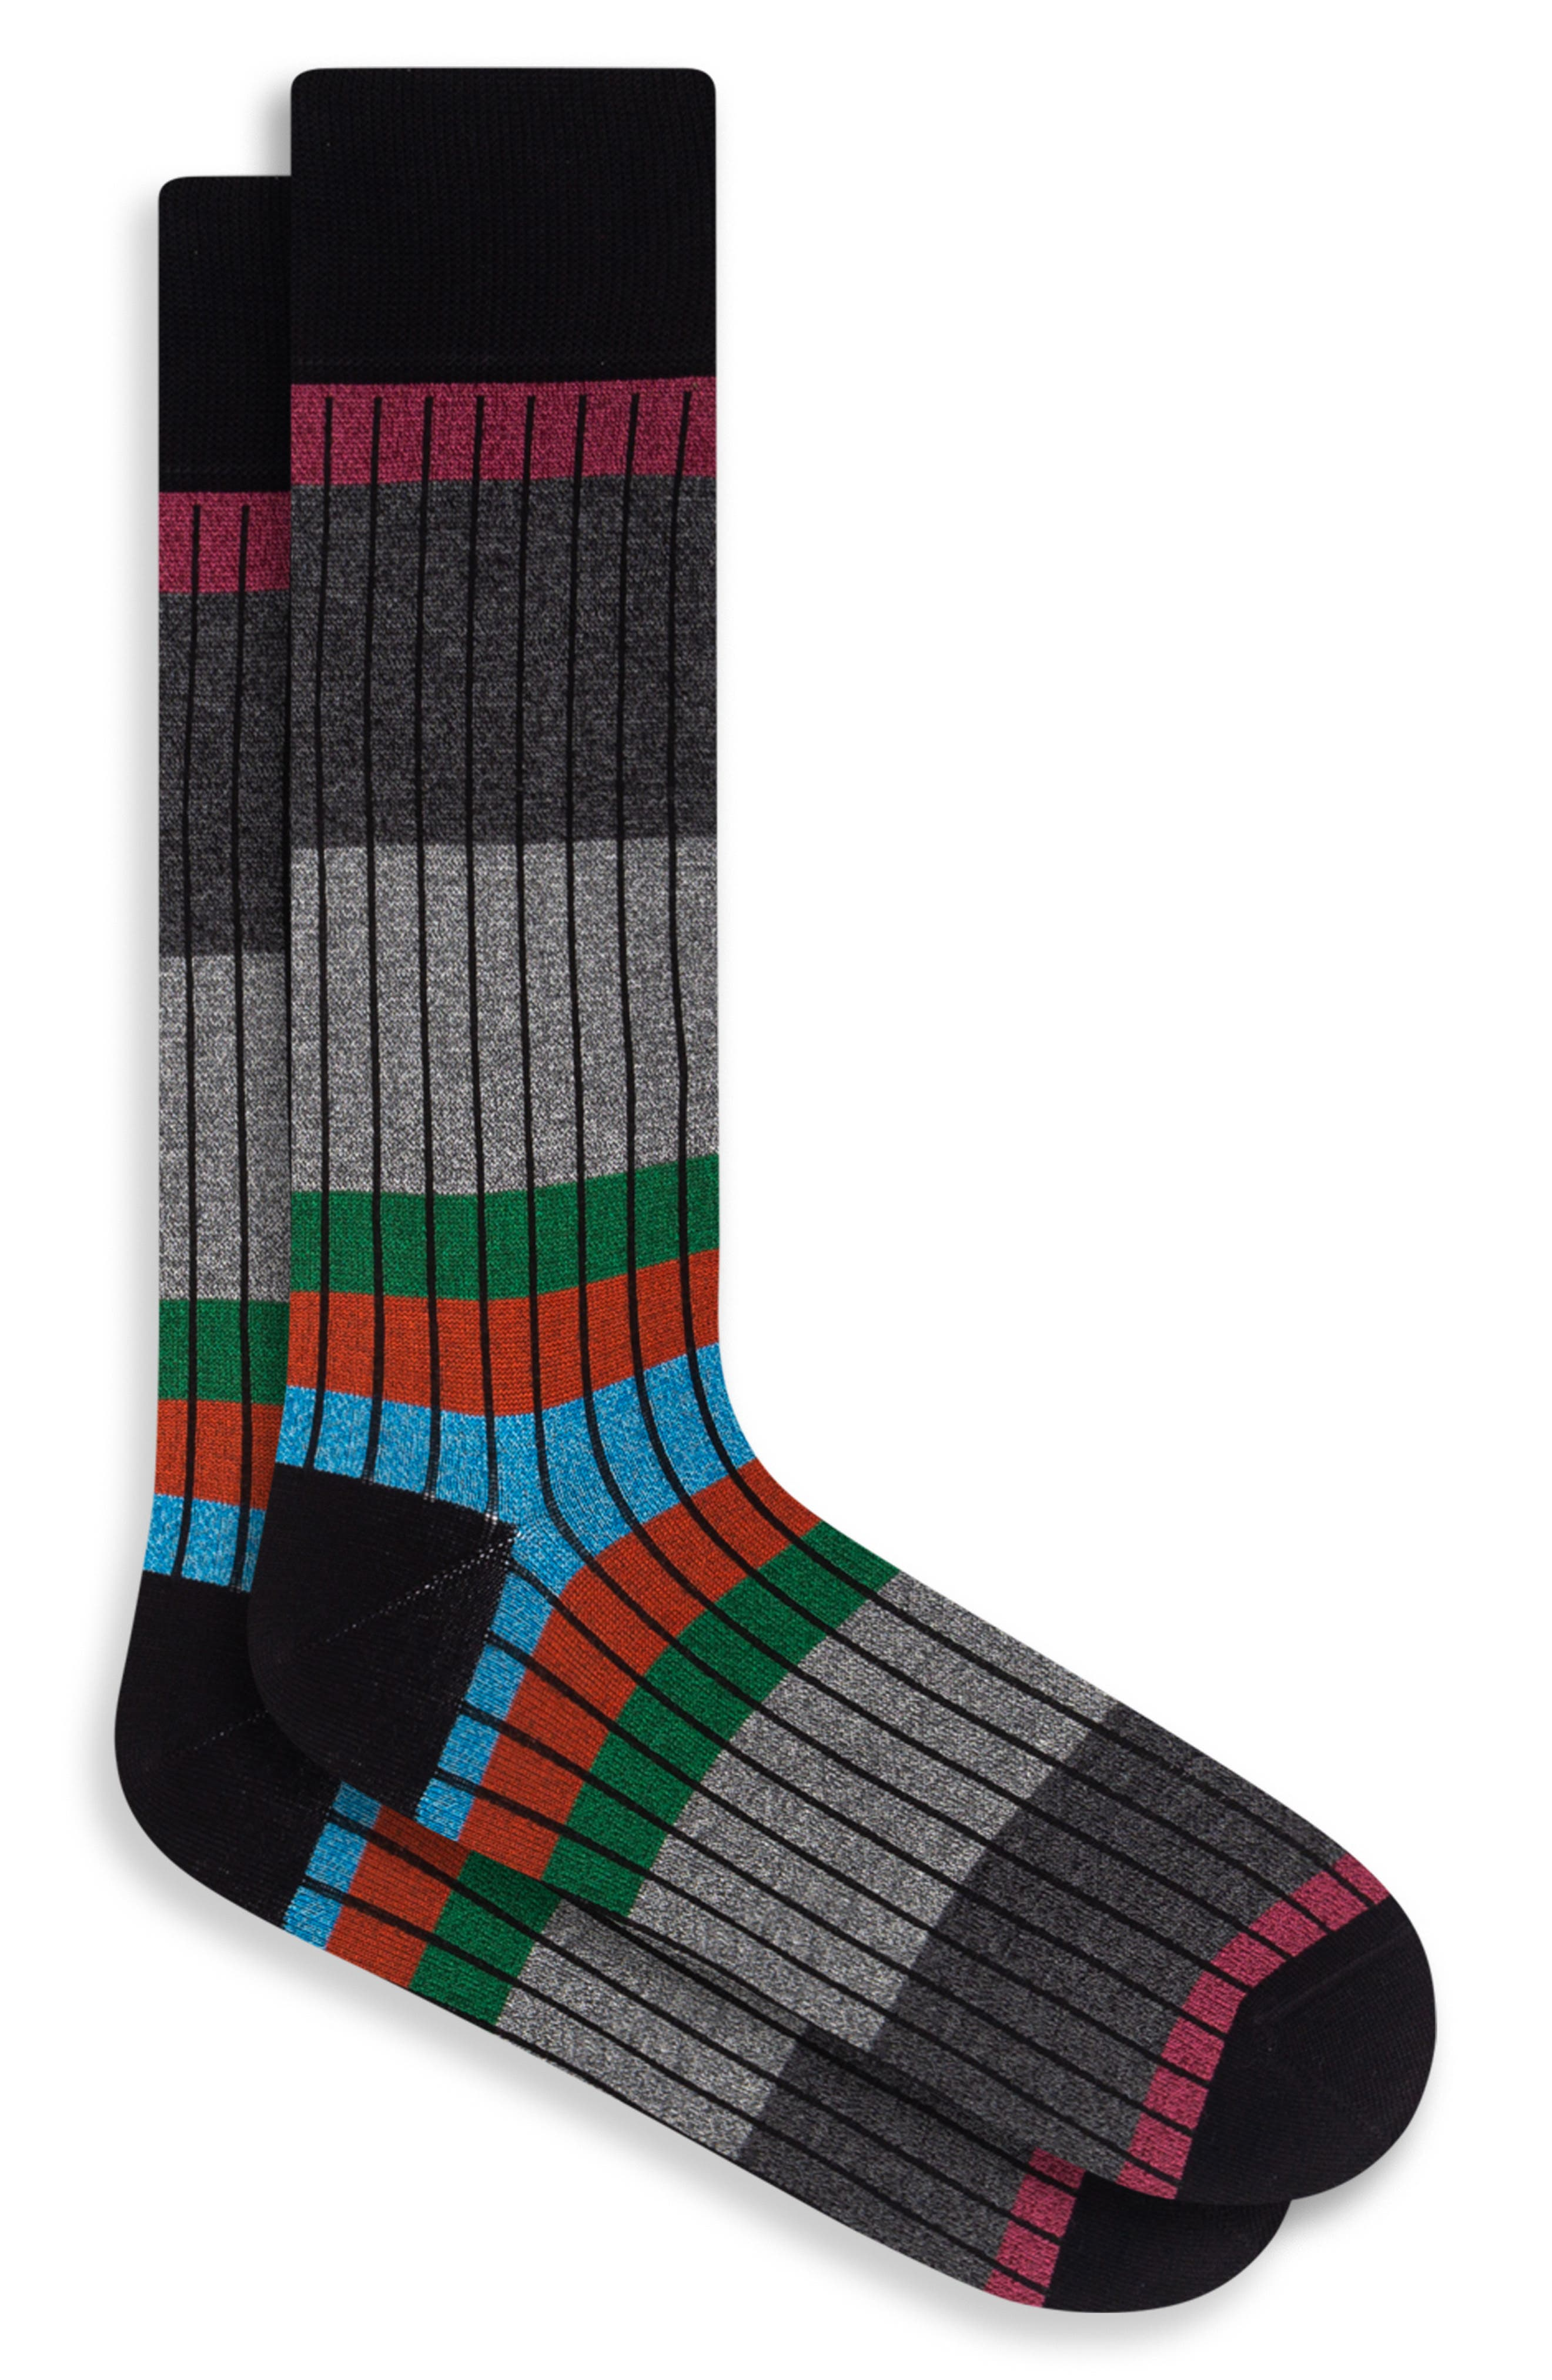 Mixed stripes bring maxed style to stretchy cotton-blend socks crafted to bring comfort and color to any look. Style Name: Bugatchi Stripe Socks. Style Number: 6096582. Available in stores.